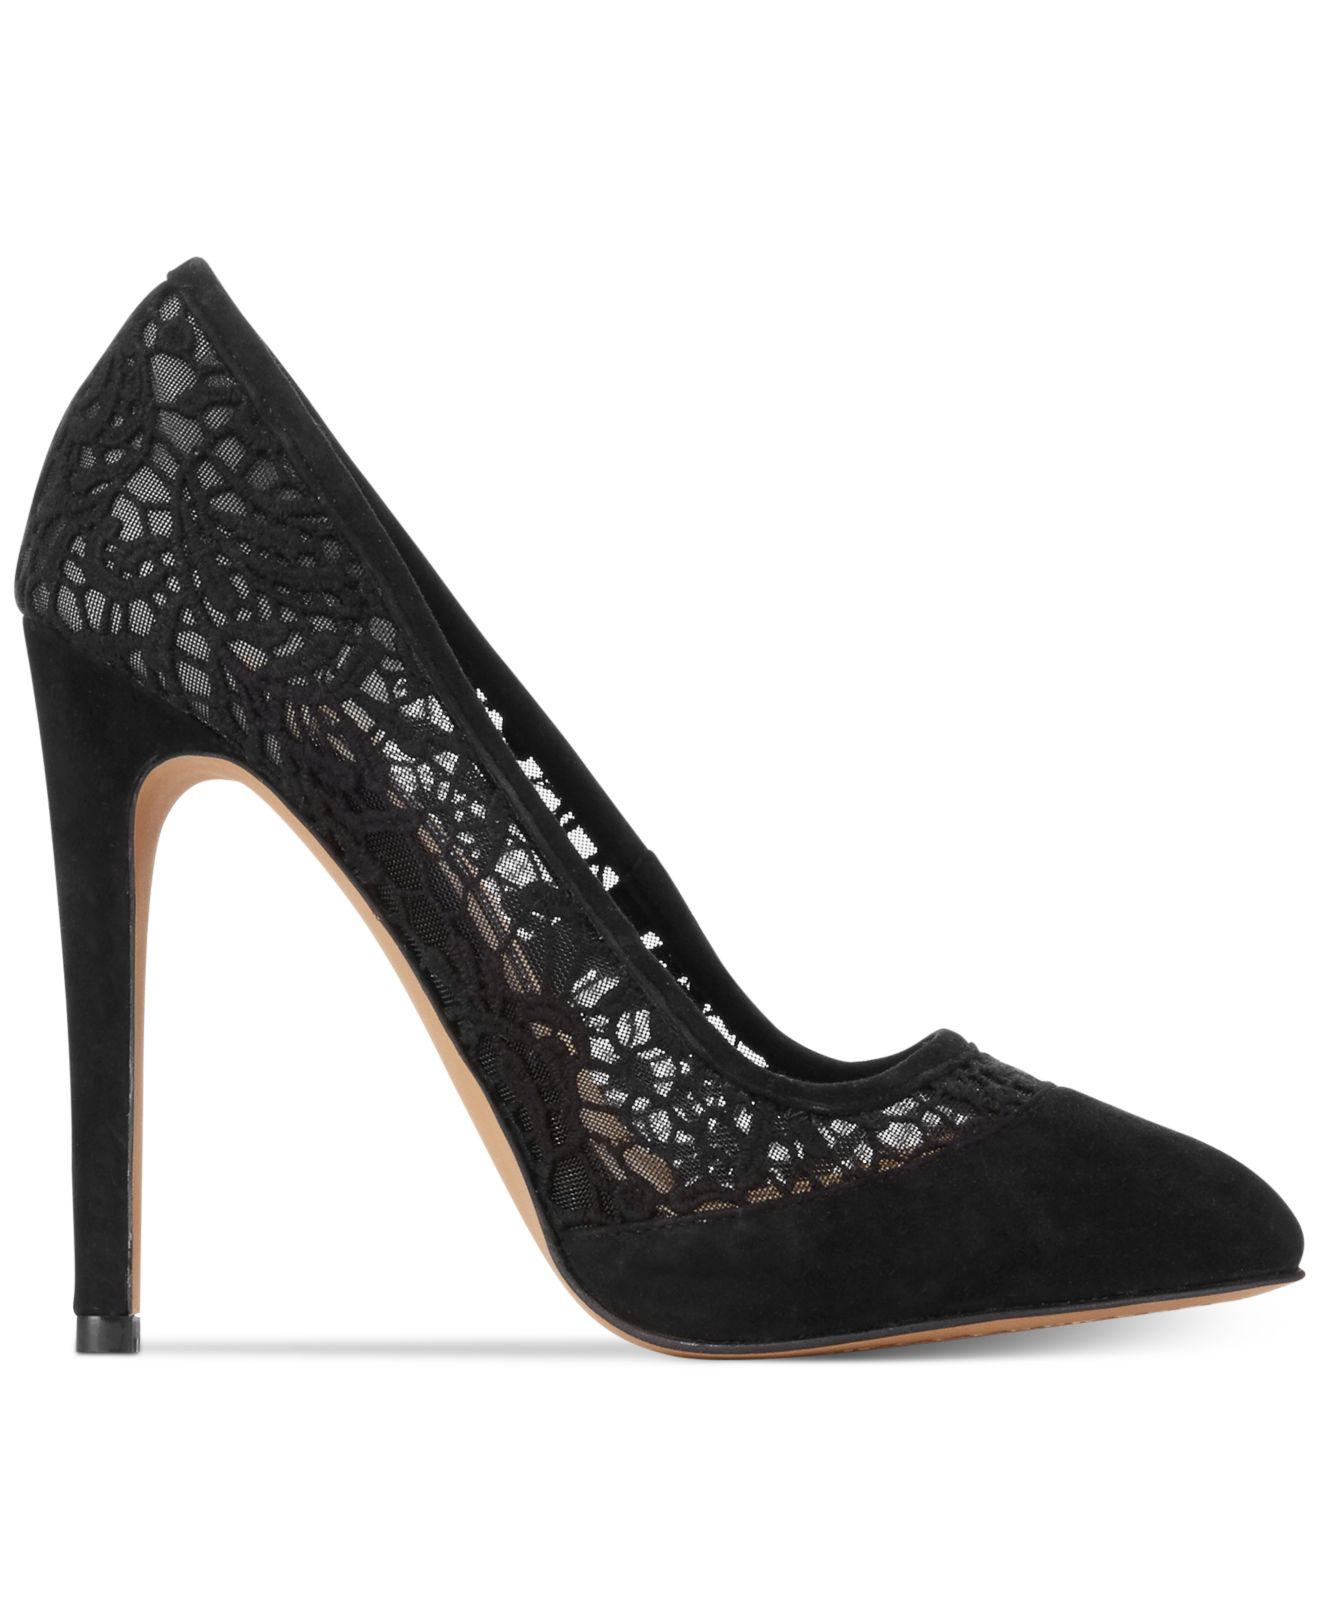 5b460c7287 French Connection Camleigh Lace Pumps in Black - Lyst